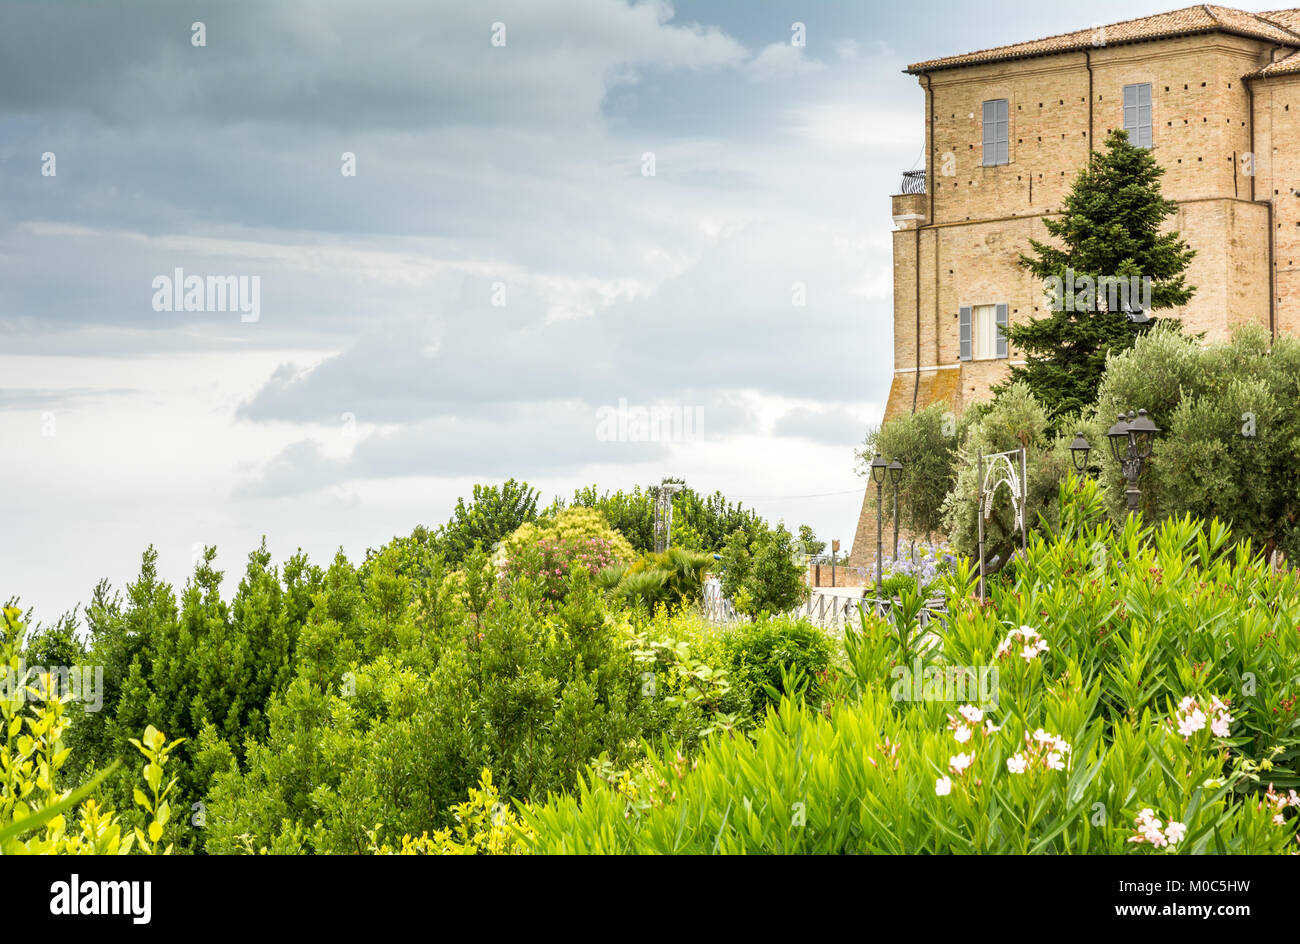 Sanctuary of the Holy House of Loreto, Marches, Italy. View of the Apostolic Palace and the garden - Stock Image